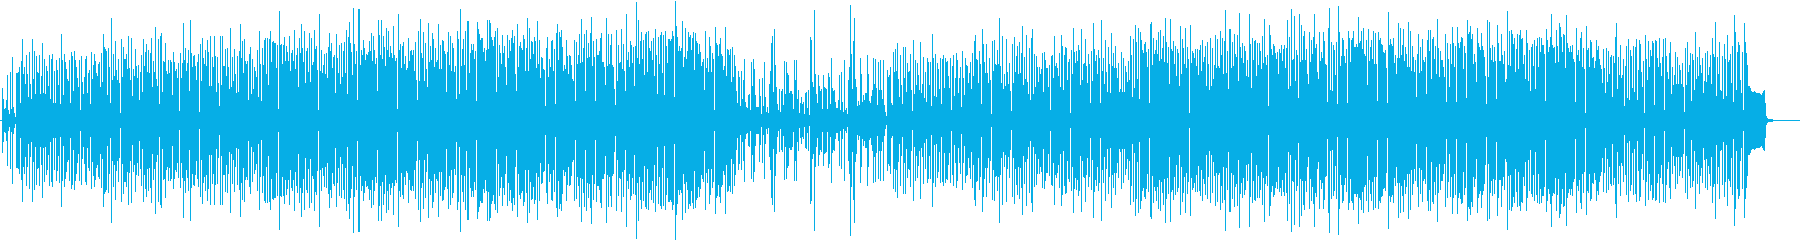 Hilarious trumpet for SNS videos and stores's reproduced waveform